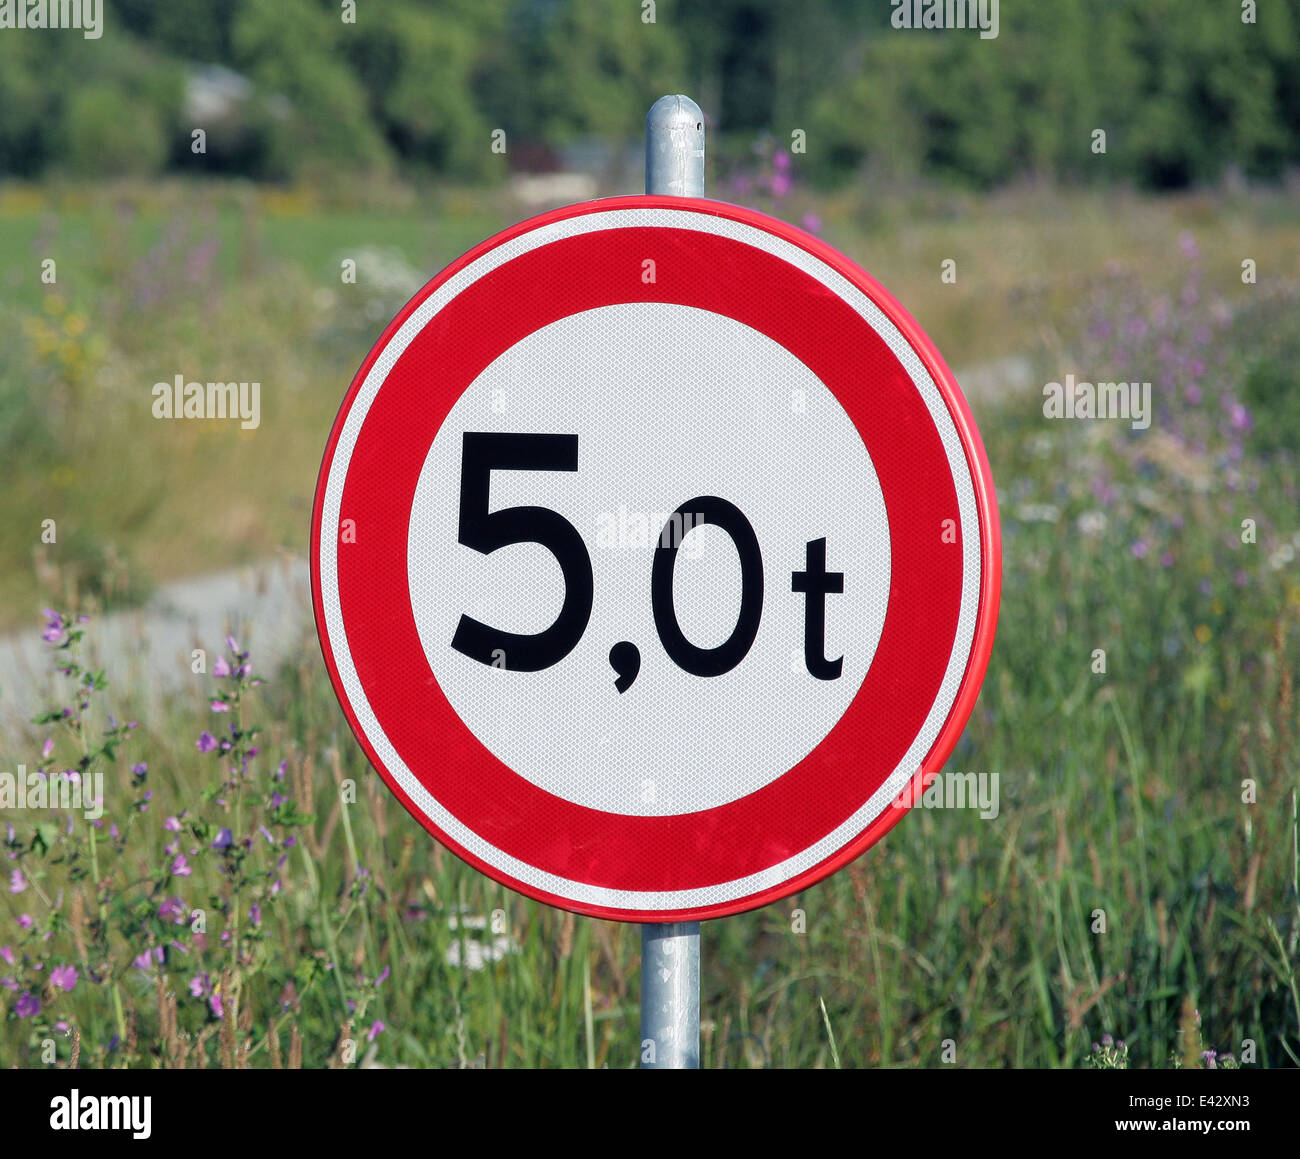 No entry over 5000 kg. - Stock Image